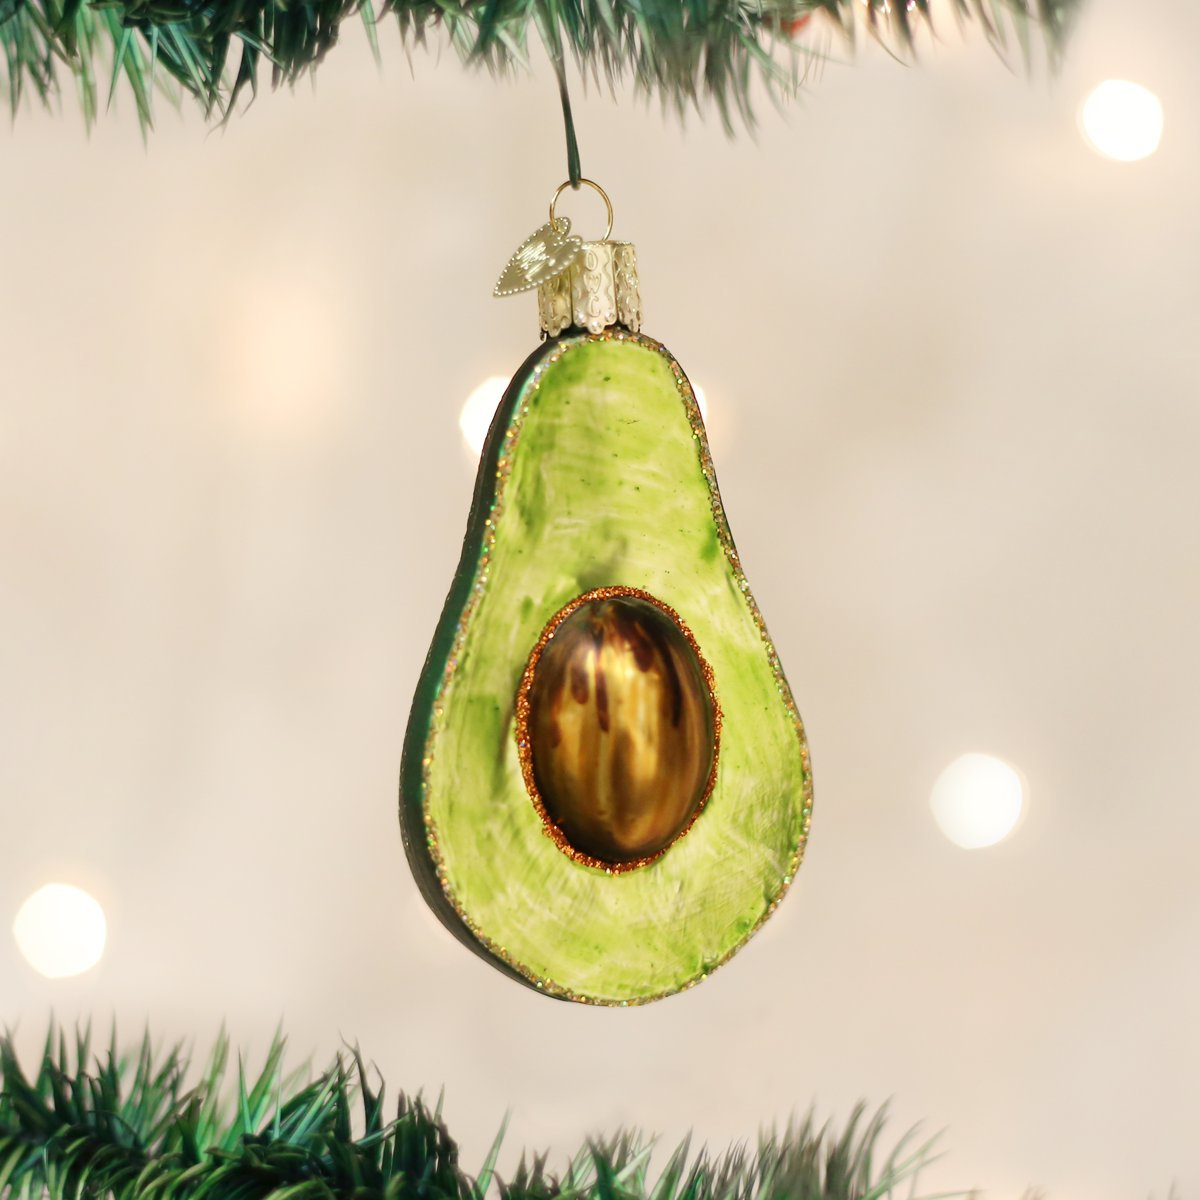 Amazon.com: Old World Christmas Ornaments: Avocado Glass Blown ...